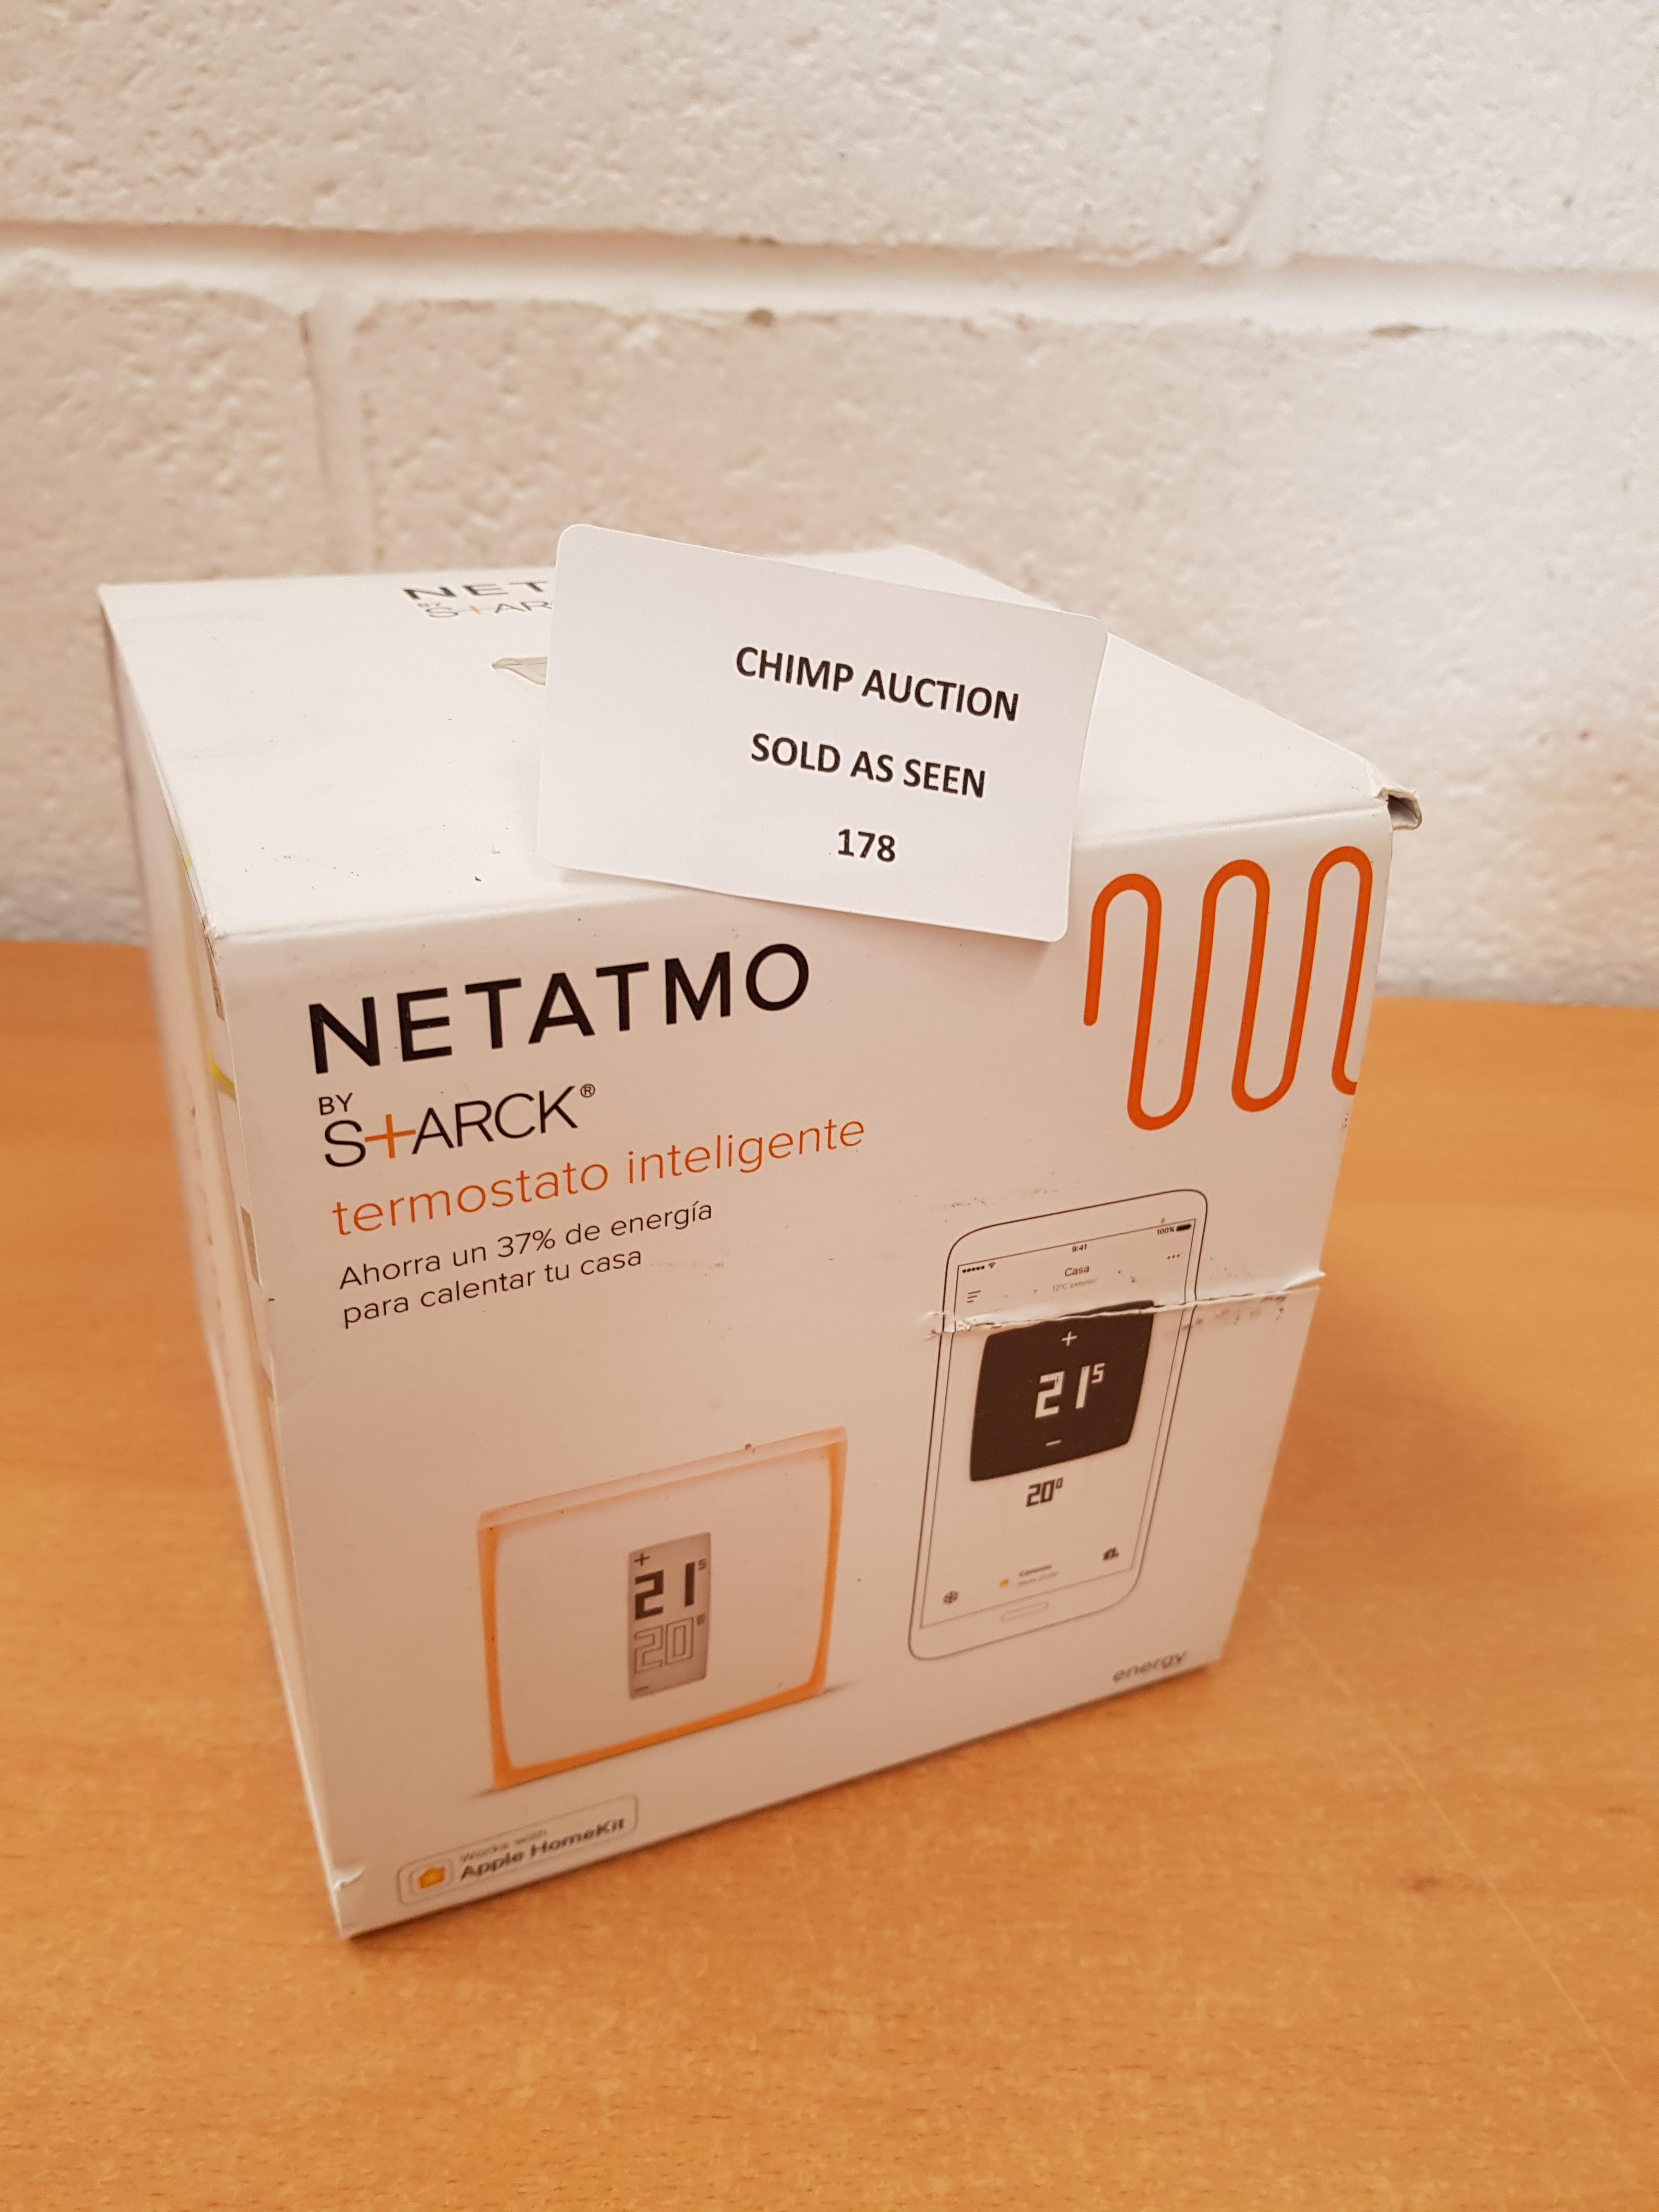 Lot 178 - Netatmo NTH01 By S+ARCK Smart Thermostat